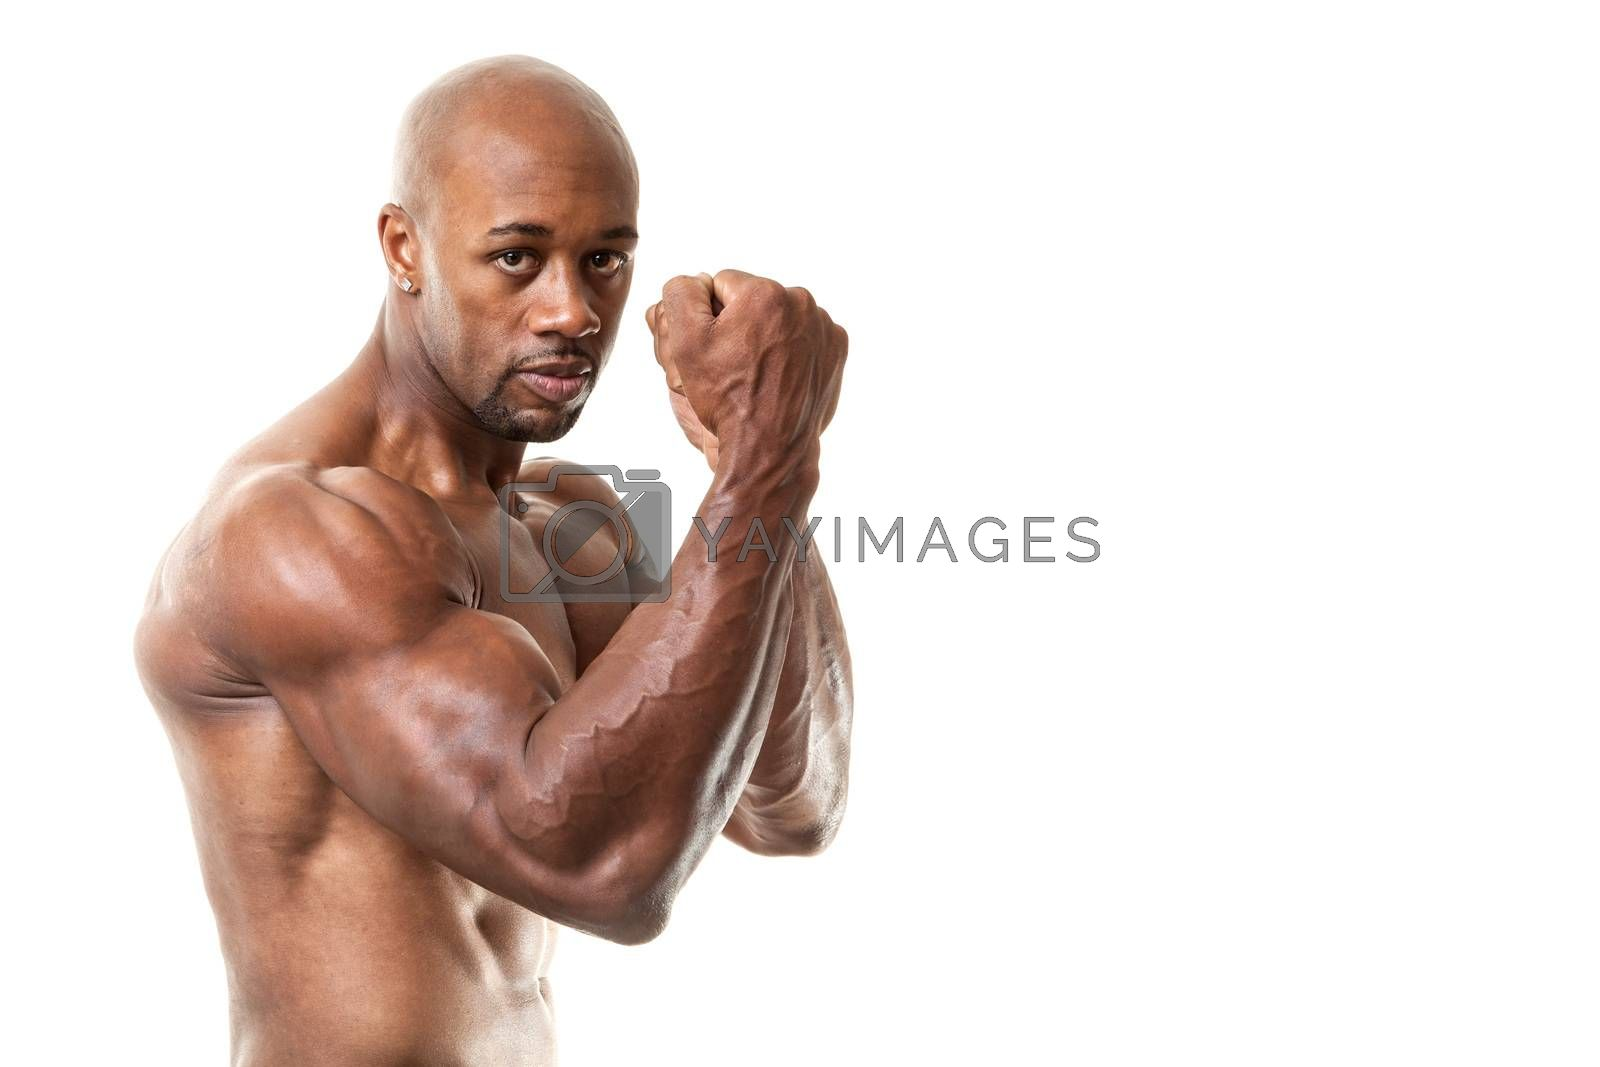 Ripped and muscular martial artist holding his fists up isolated over a white background. Great boxing or fitness concept. Shallow depth of field.